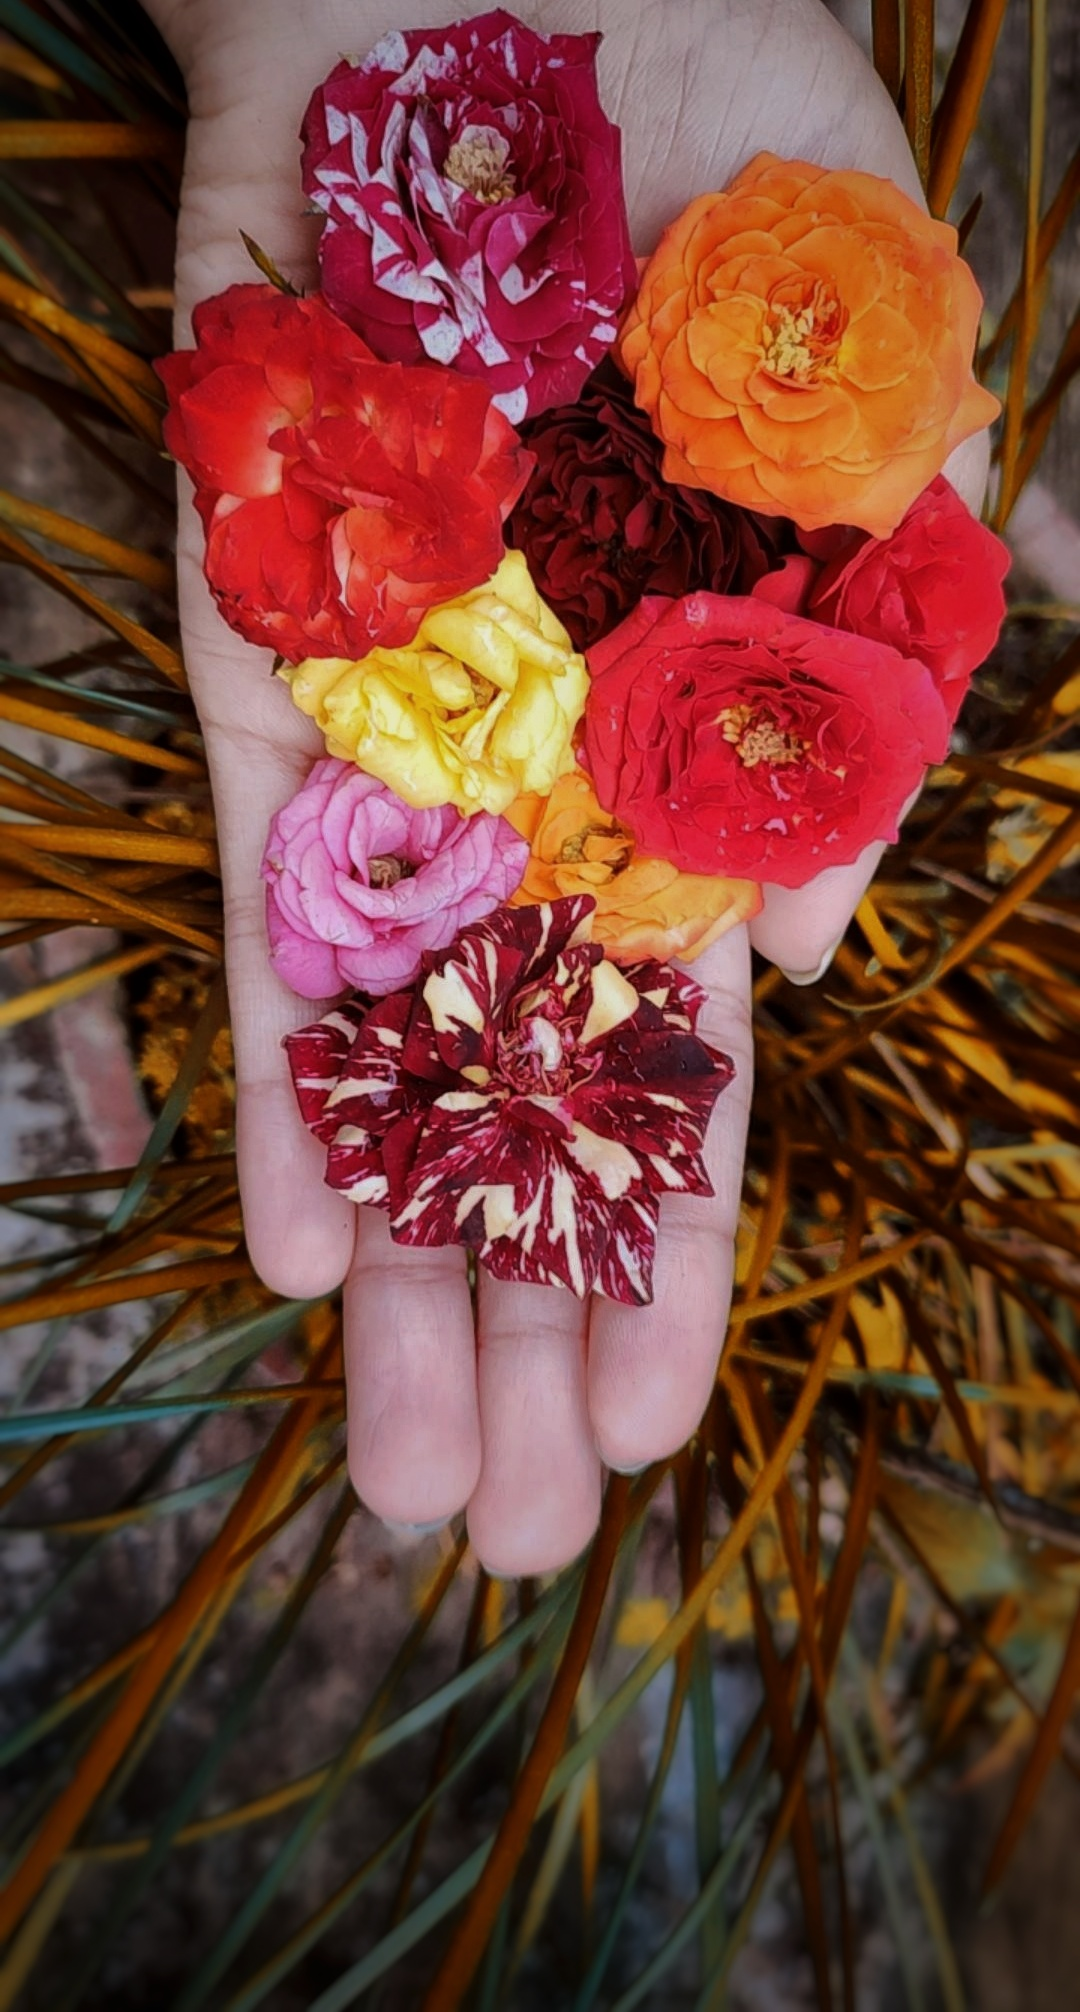 Colourful flowers in hand